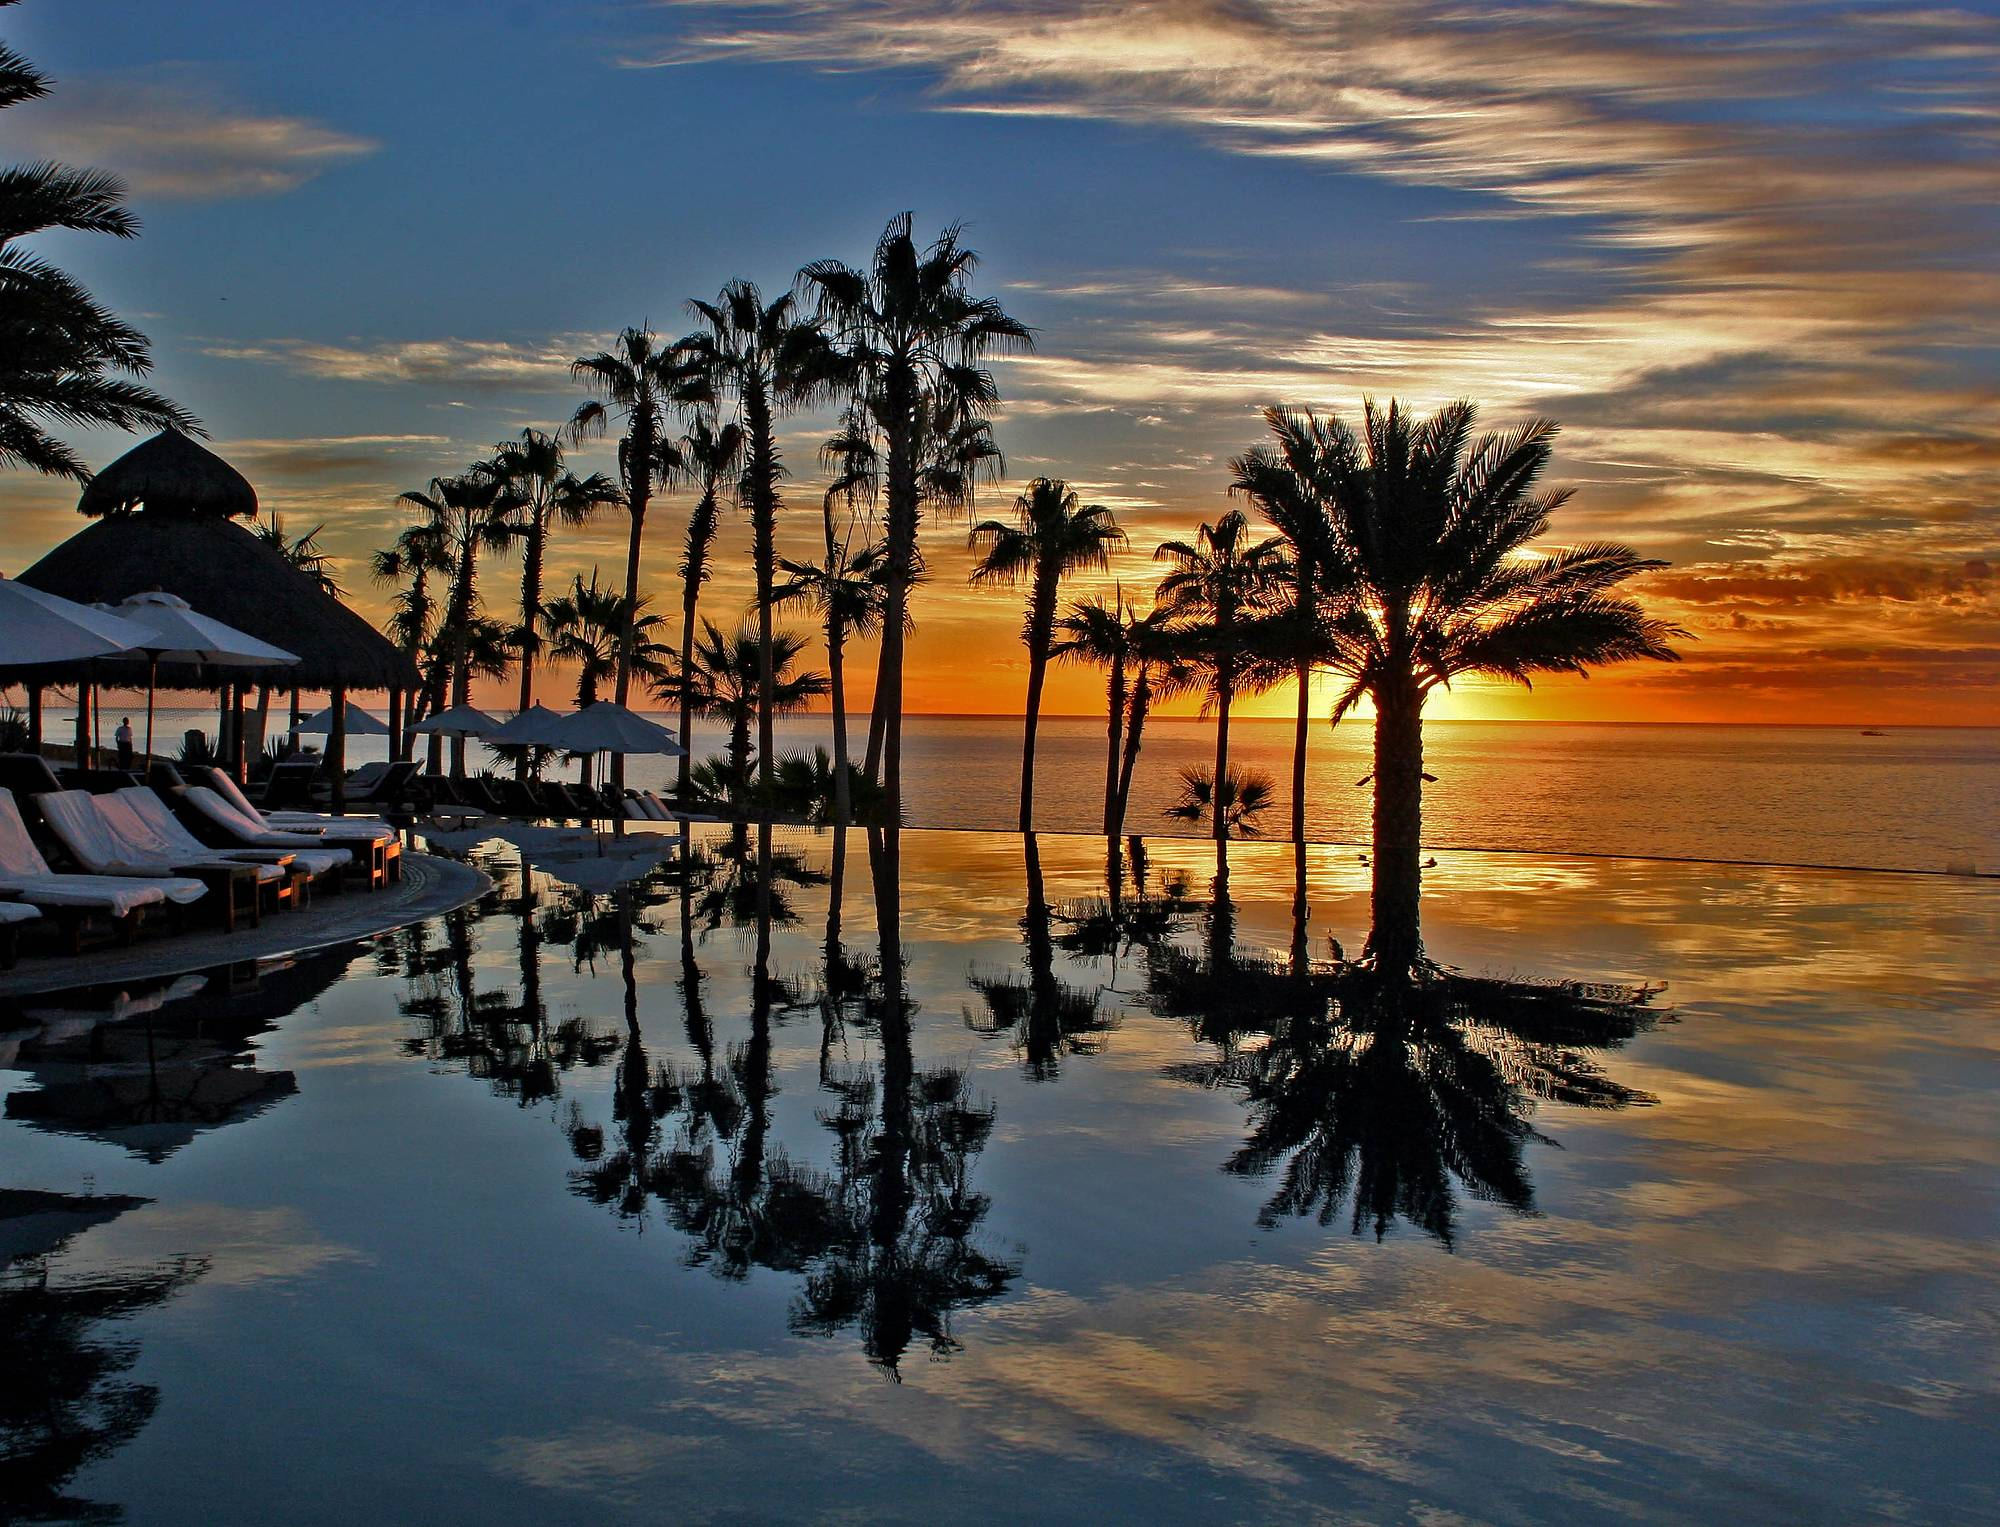 The Photo was taken on a colorful Morning in Cabo San Lucas, in an unique setting of an infinity swimming pool over looking the Sea of Cortez. There is double reflection. The golden colors of the sun and the distant sky reflected in the Sea of Cortez and distant part of the infinity pool. The palm trees and light golden clouds against a bluish sky reflected mainly in the infinity pool, making for a nice composition.